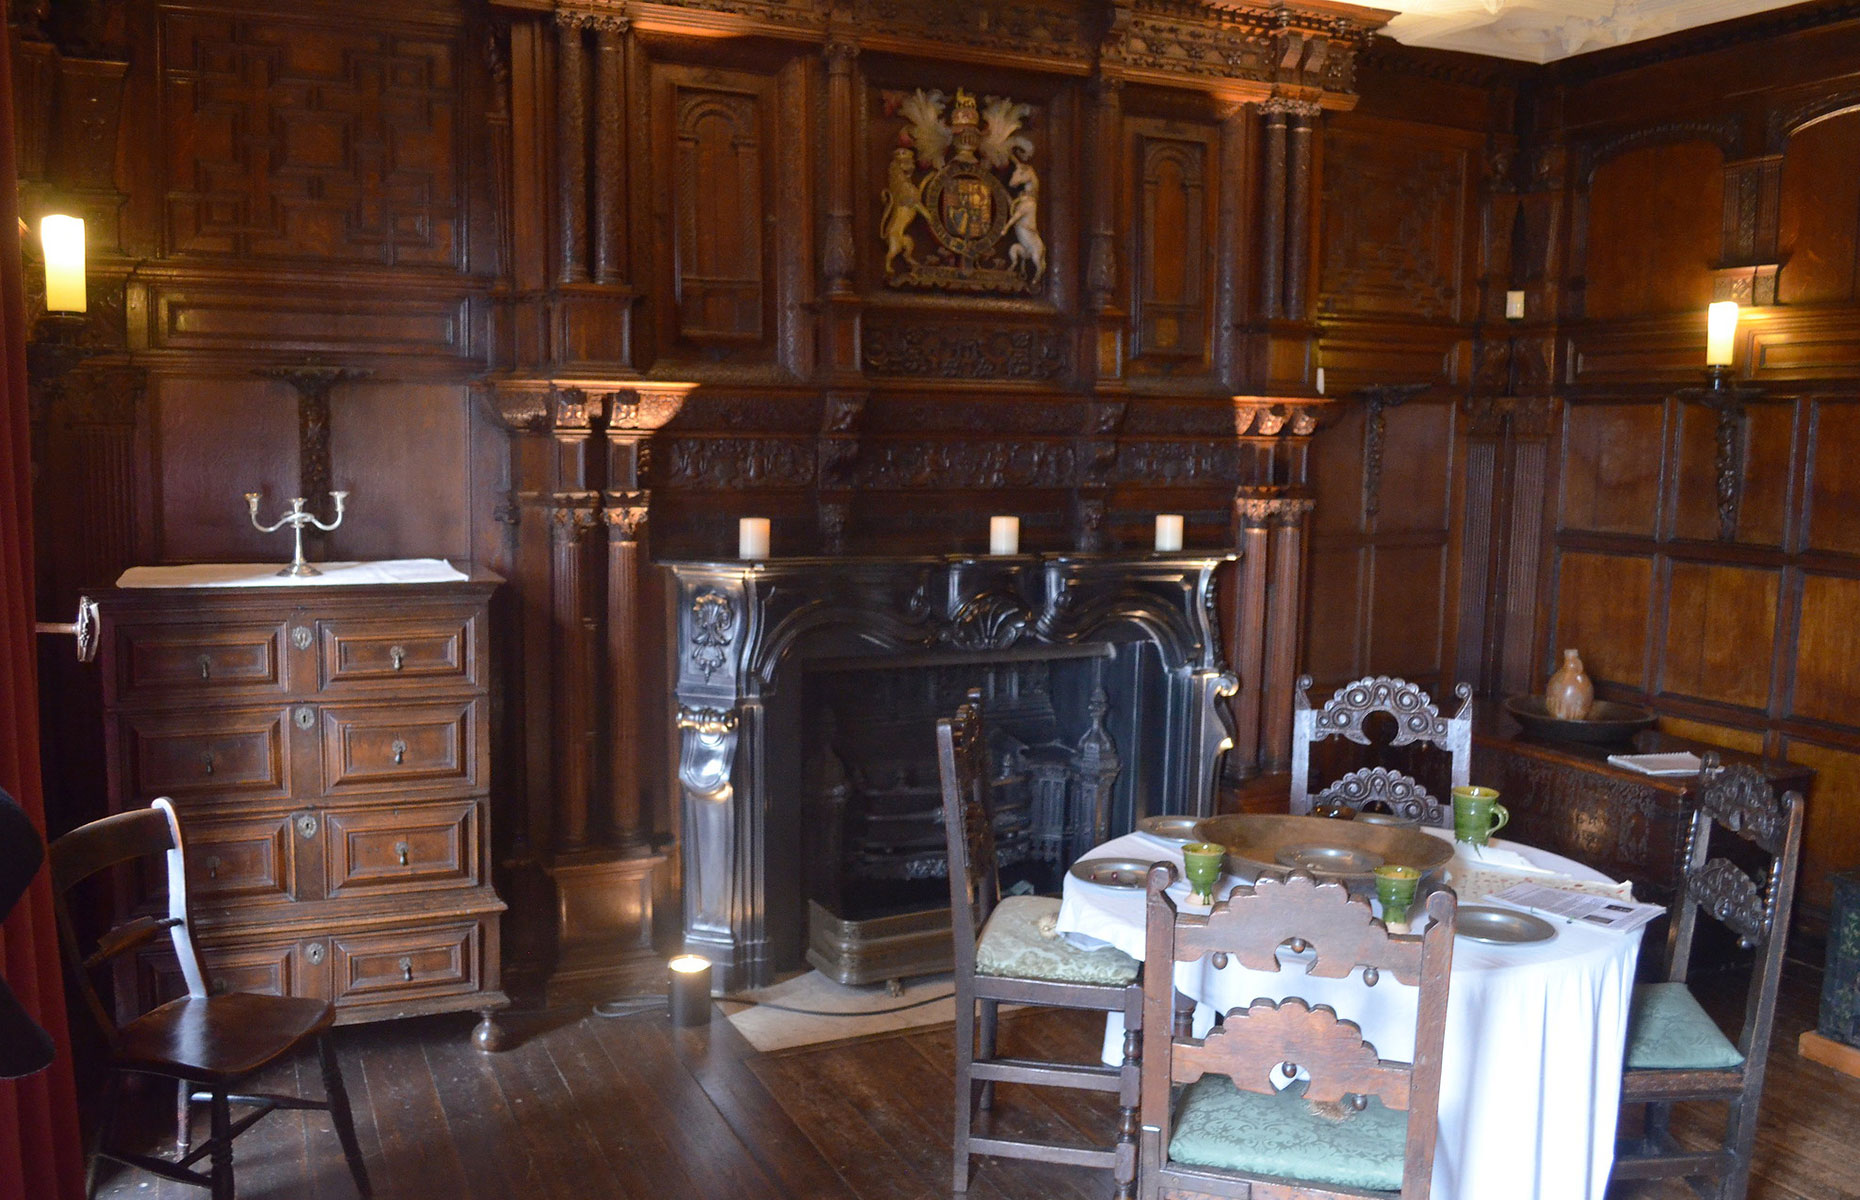 Elizabethan House Museum, Great Yarmouth (Nick/Flickr/CC BY-NC-ND 2.0)